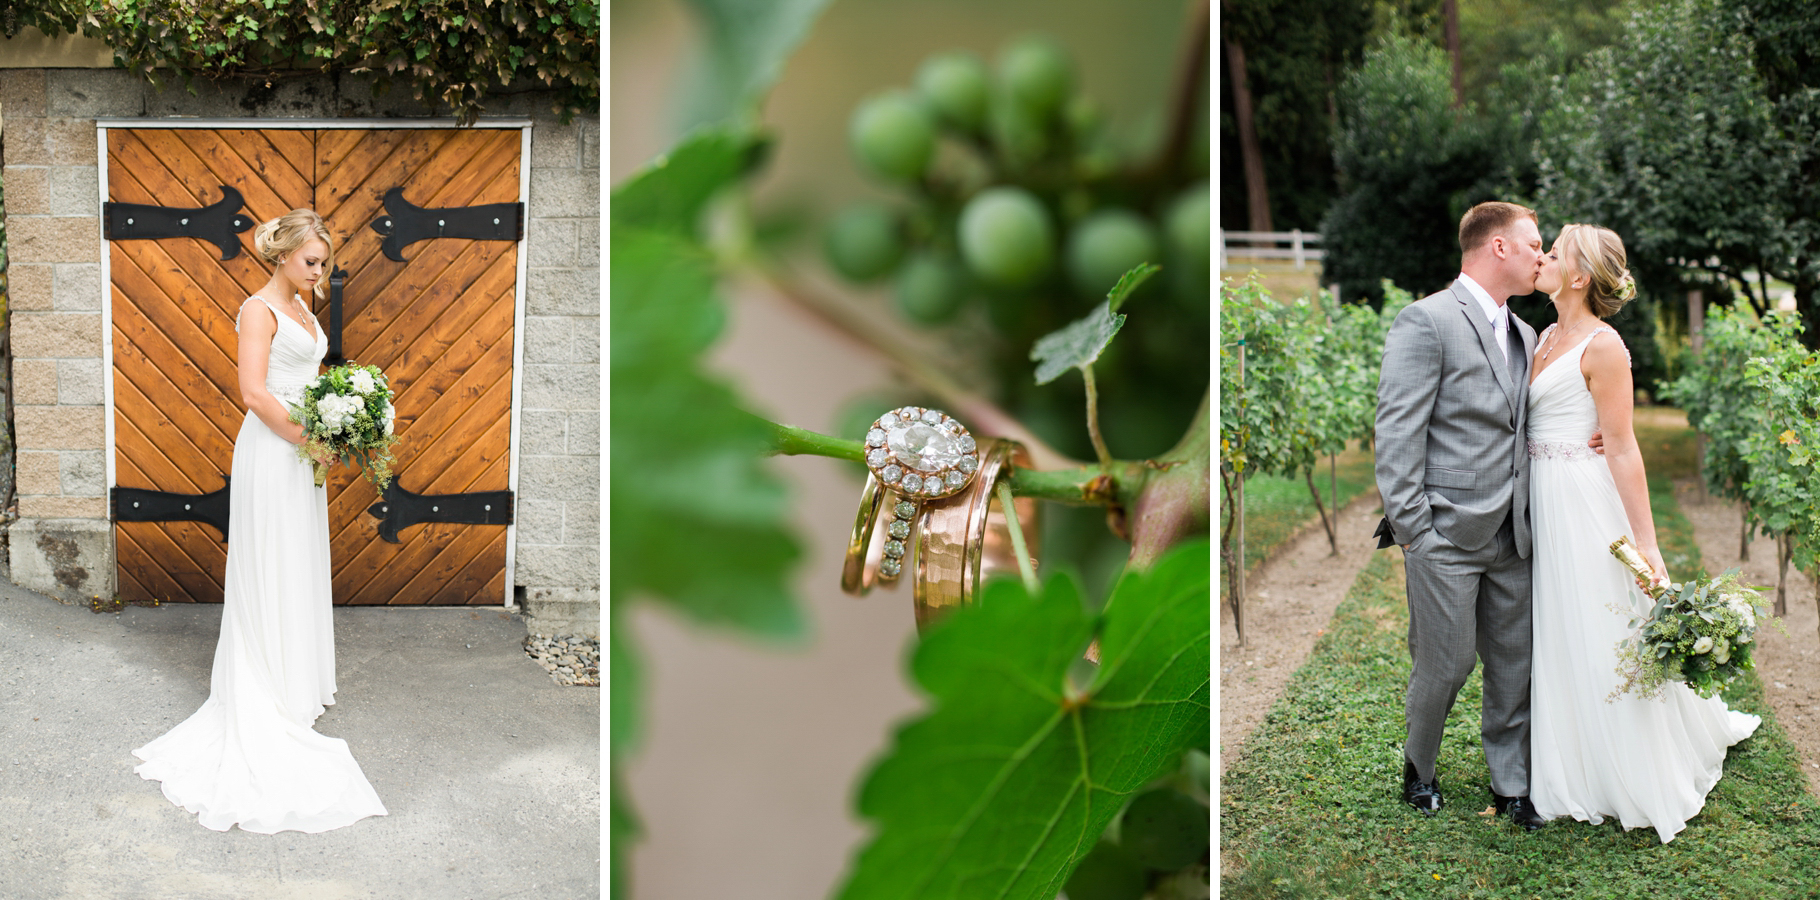 31-Woodinville-Bride-Groom-Washington-Winery-Delille-Cellars-Seattle-Wedding-Photographer